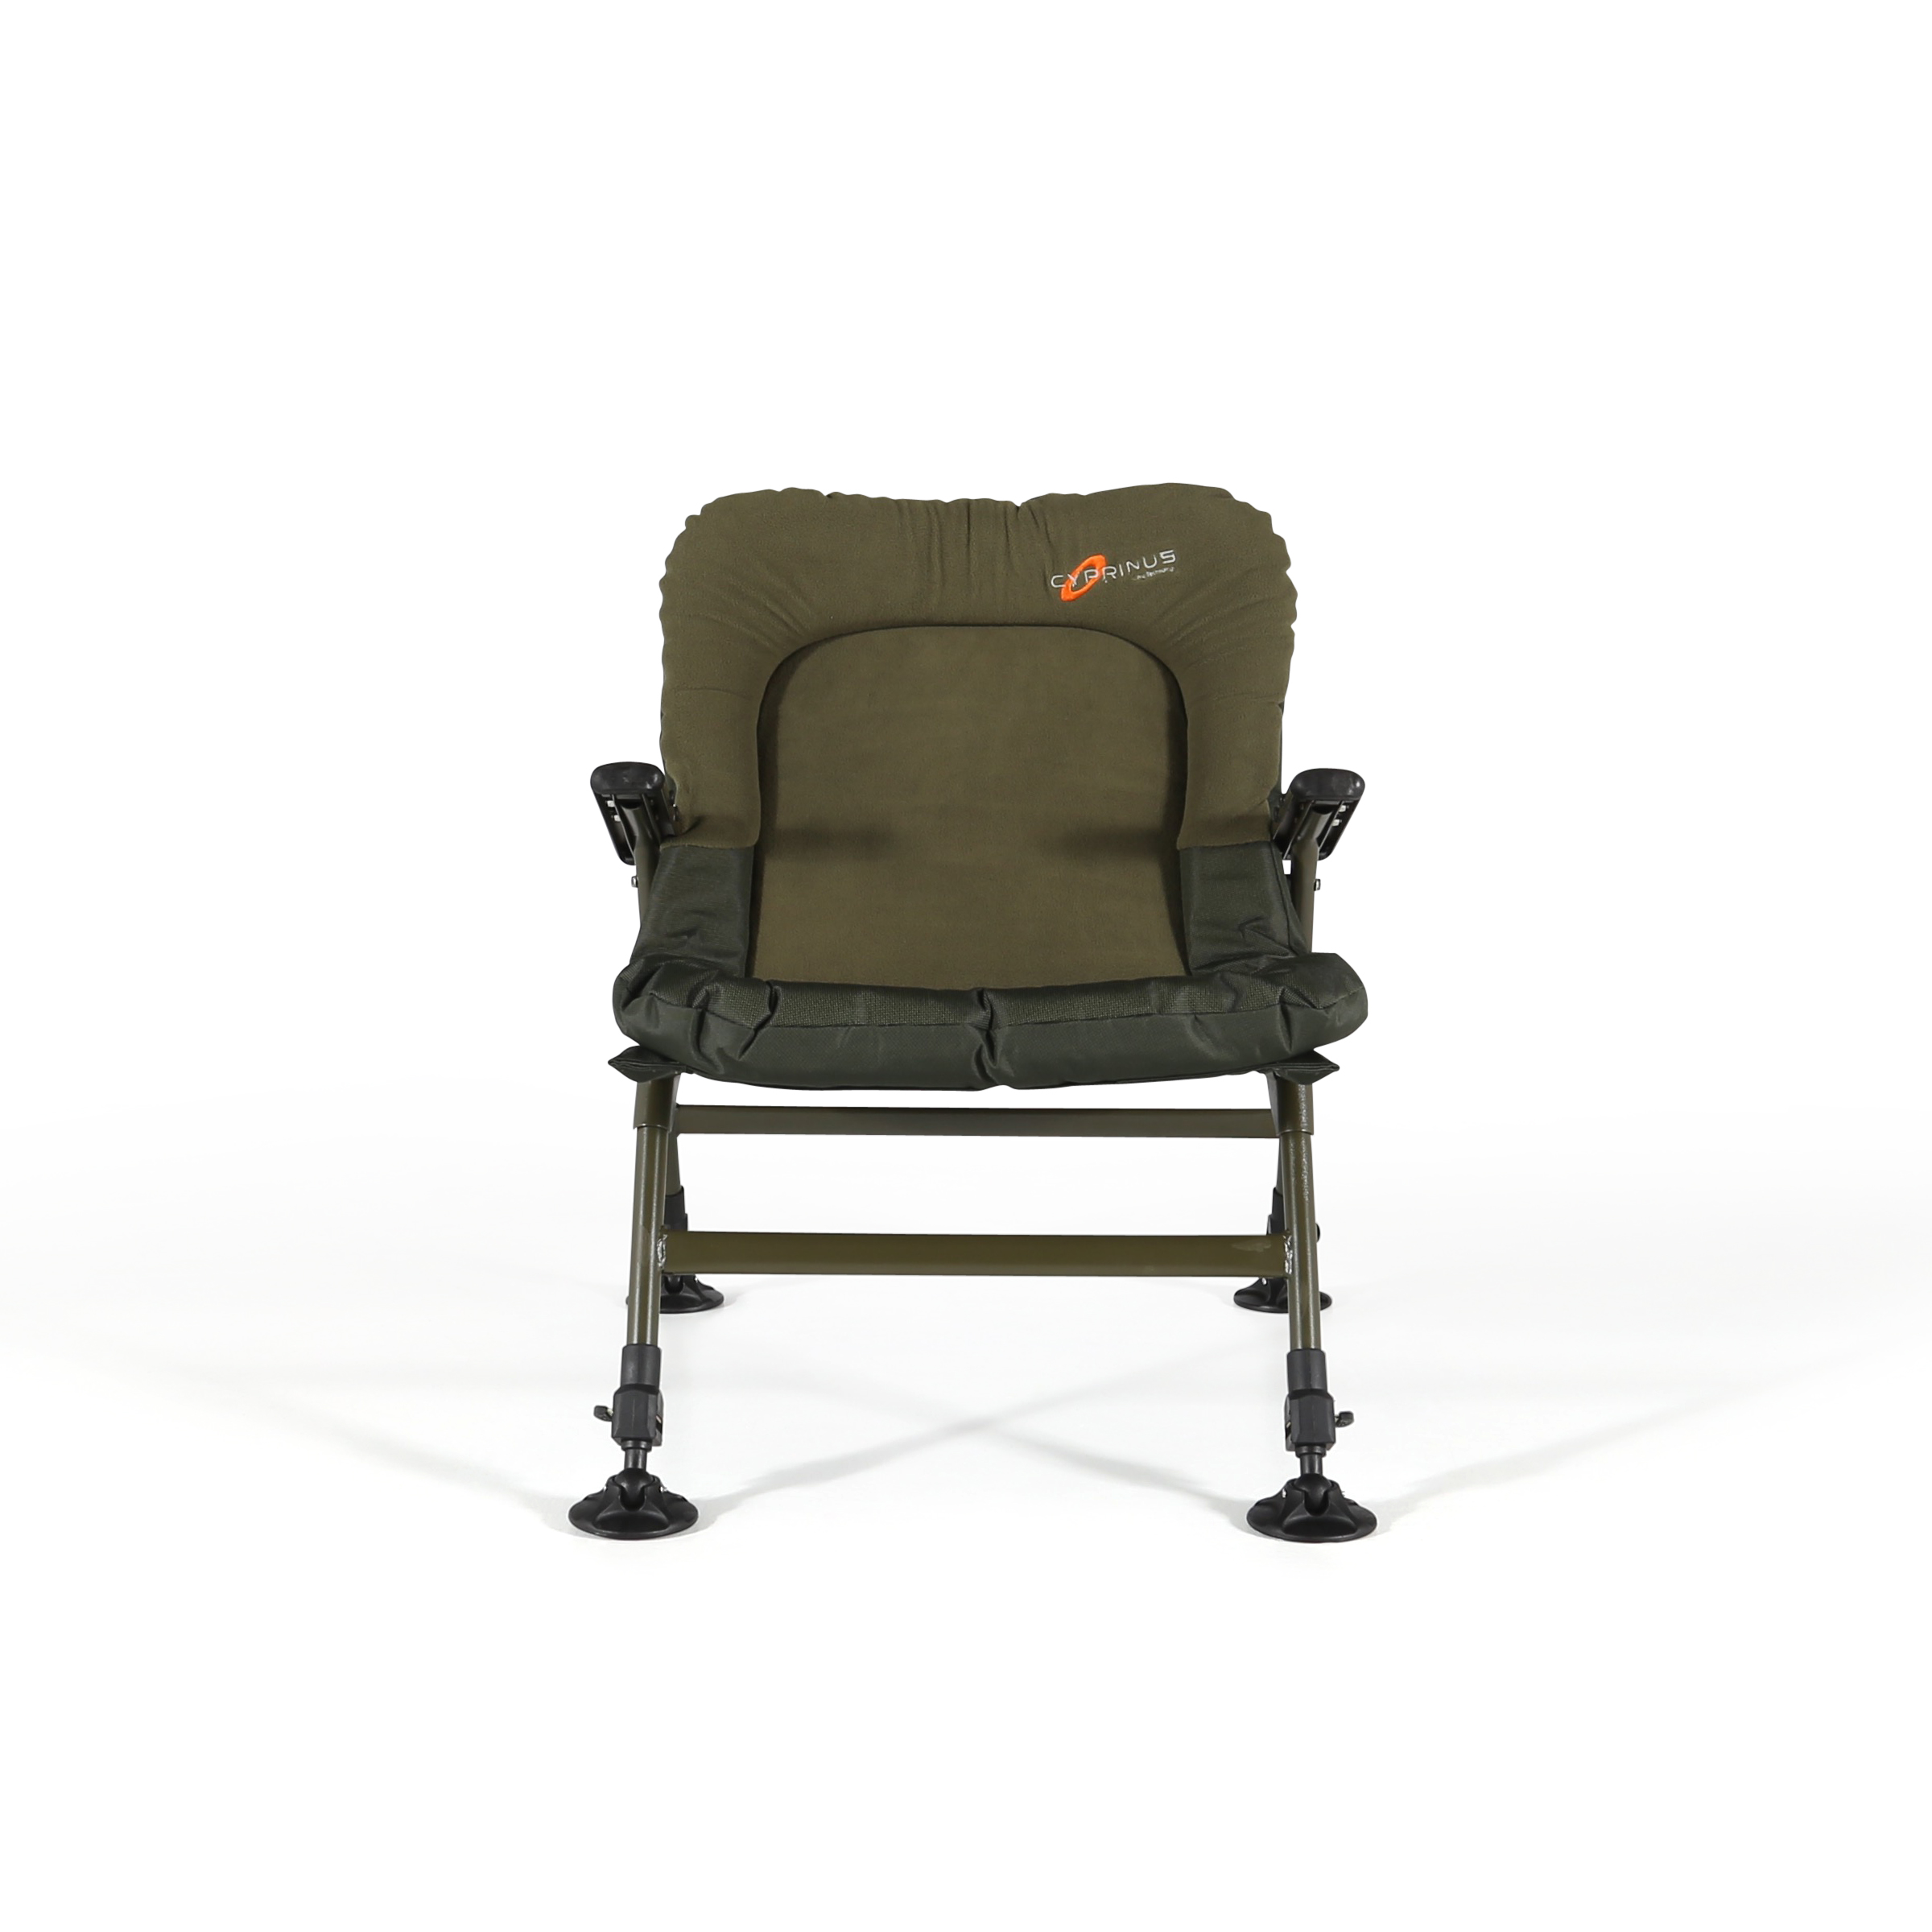 Cyprinus Memory Foam Chair Lightweight padded Carp Coarse